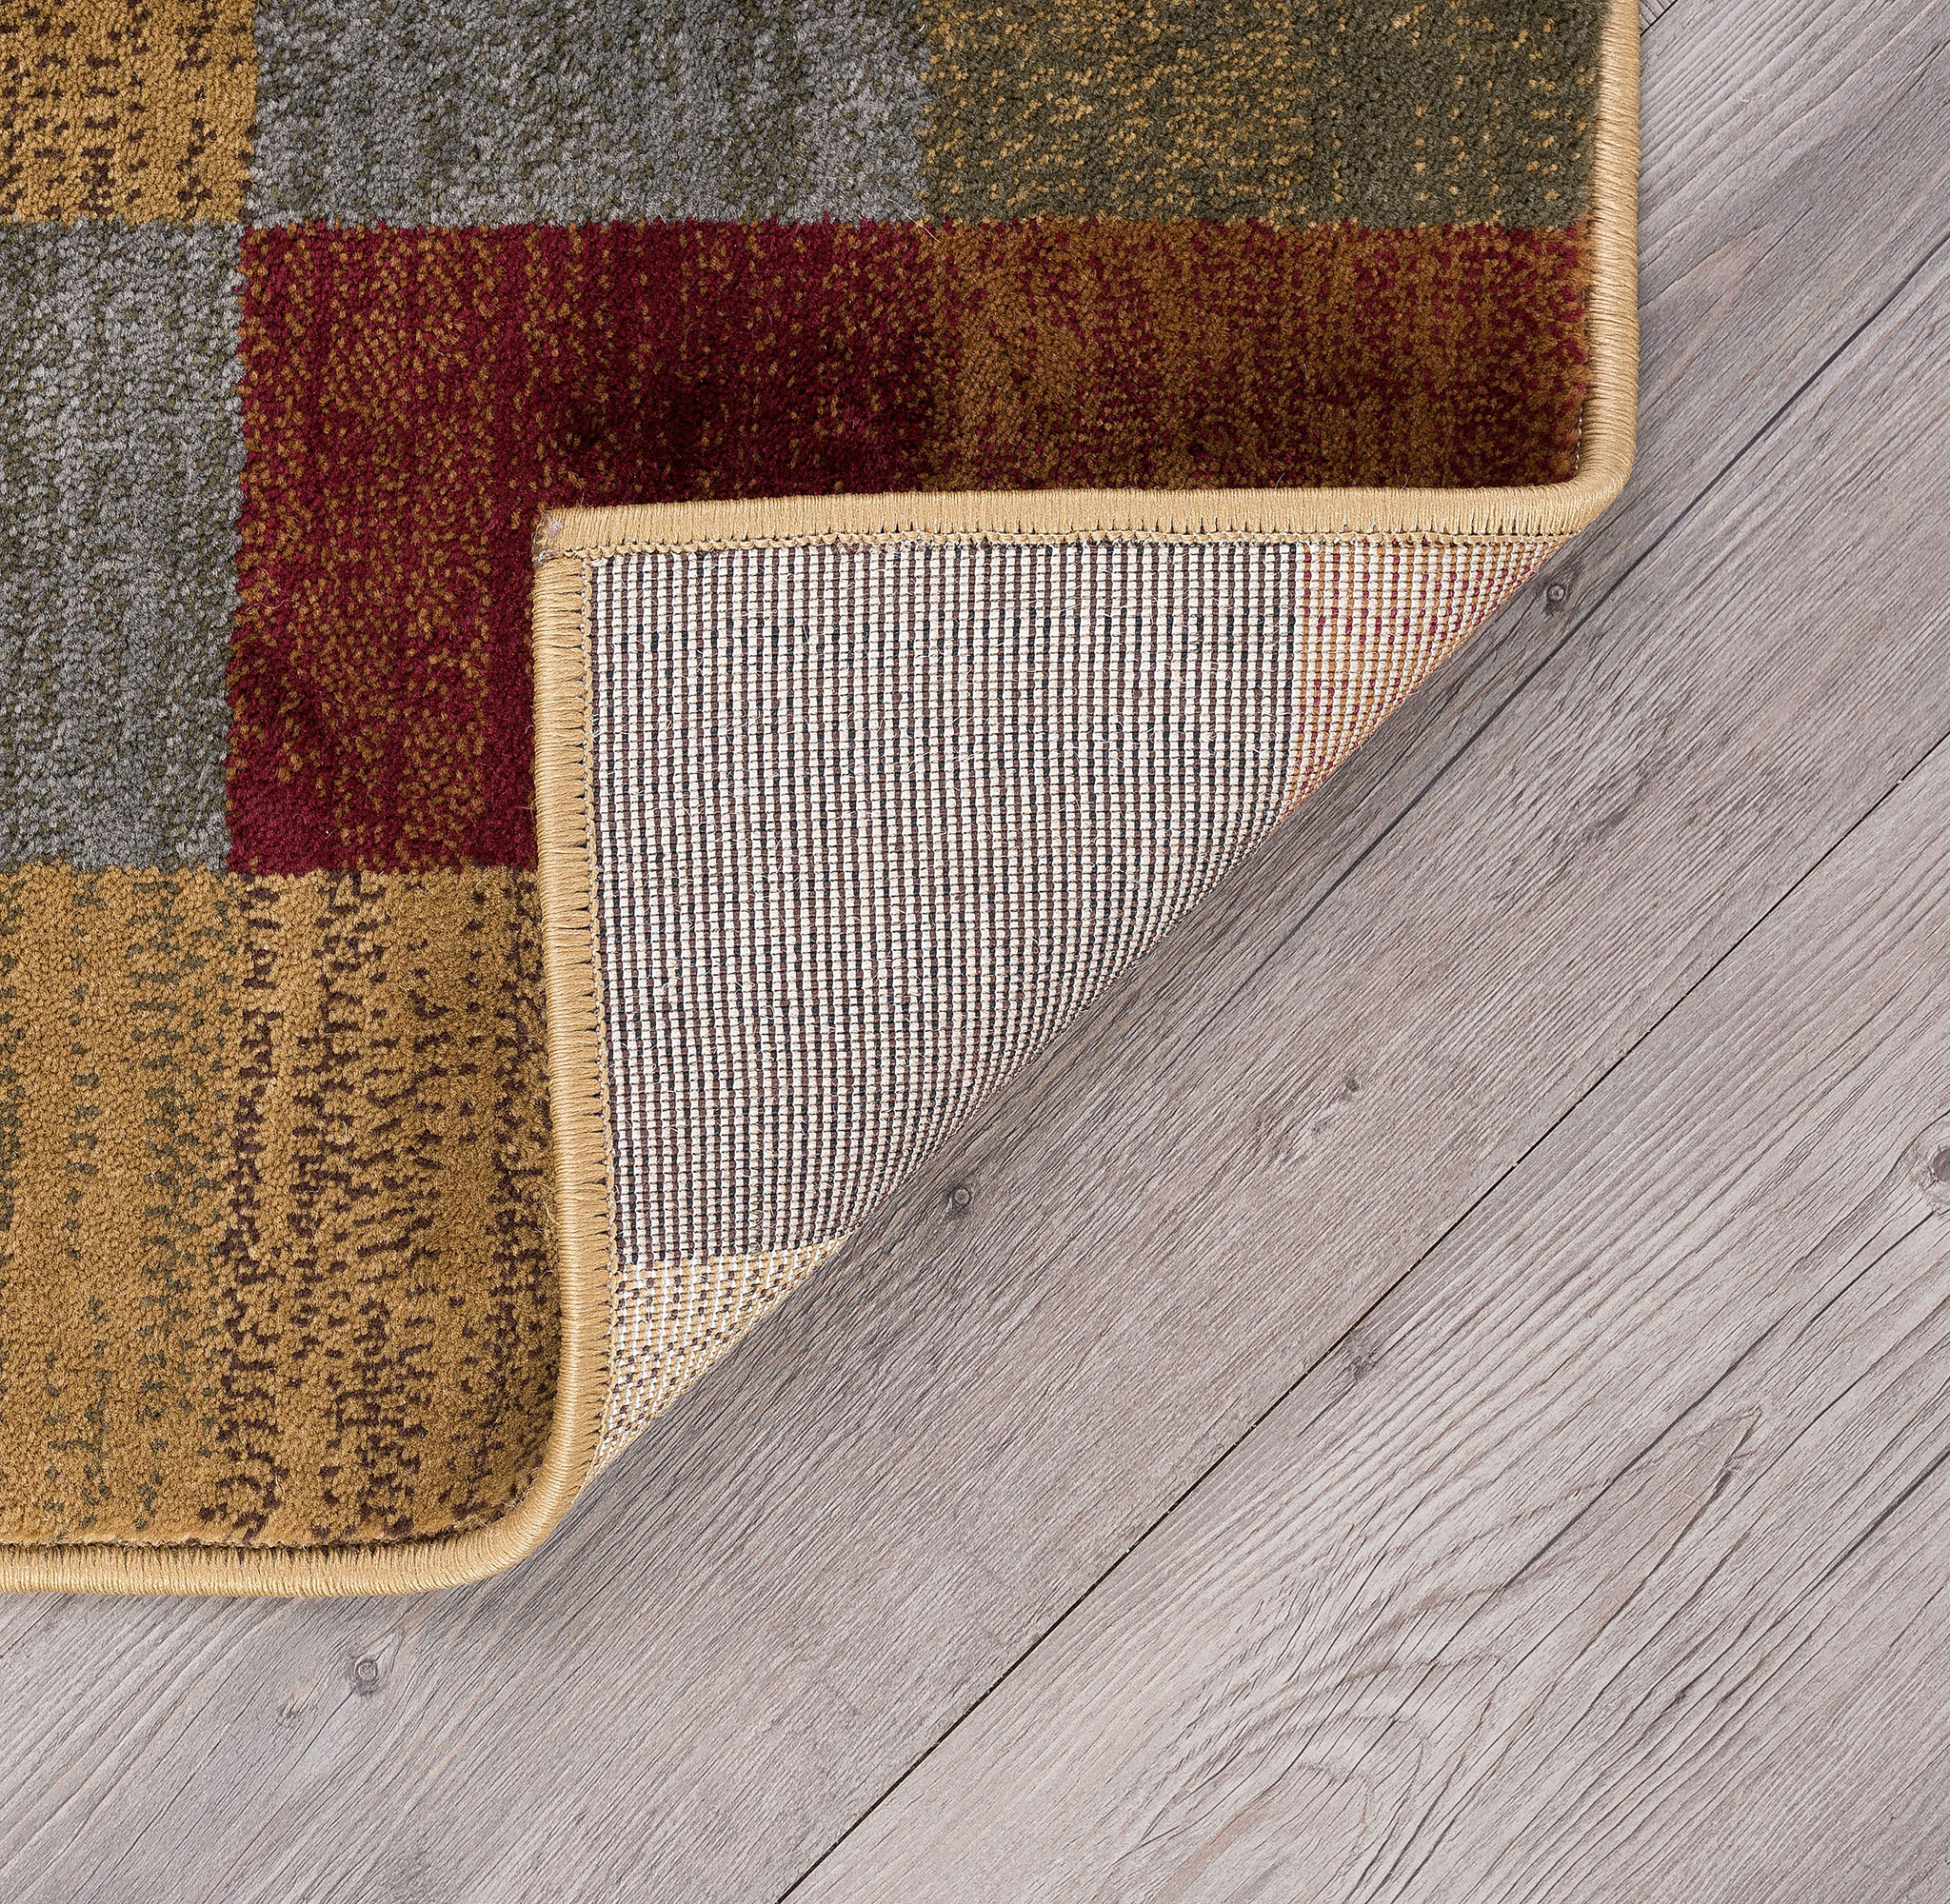 Checked Area Rugs: Multi-Color Checked Modern Area Rug Boxes 2x7 Carpet